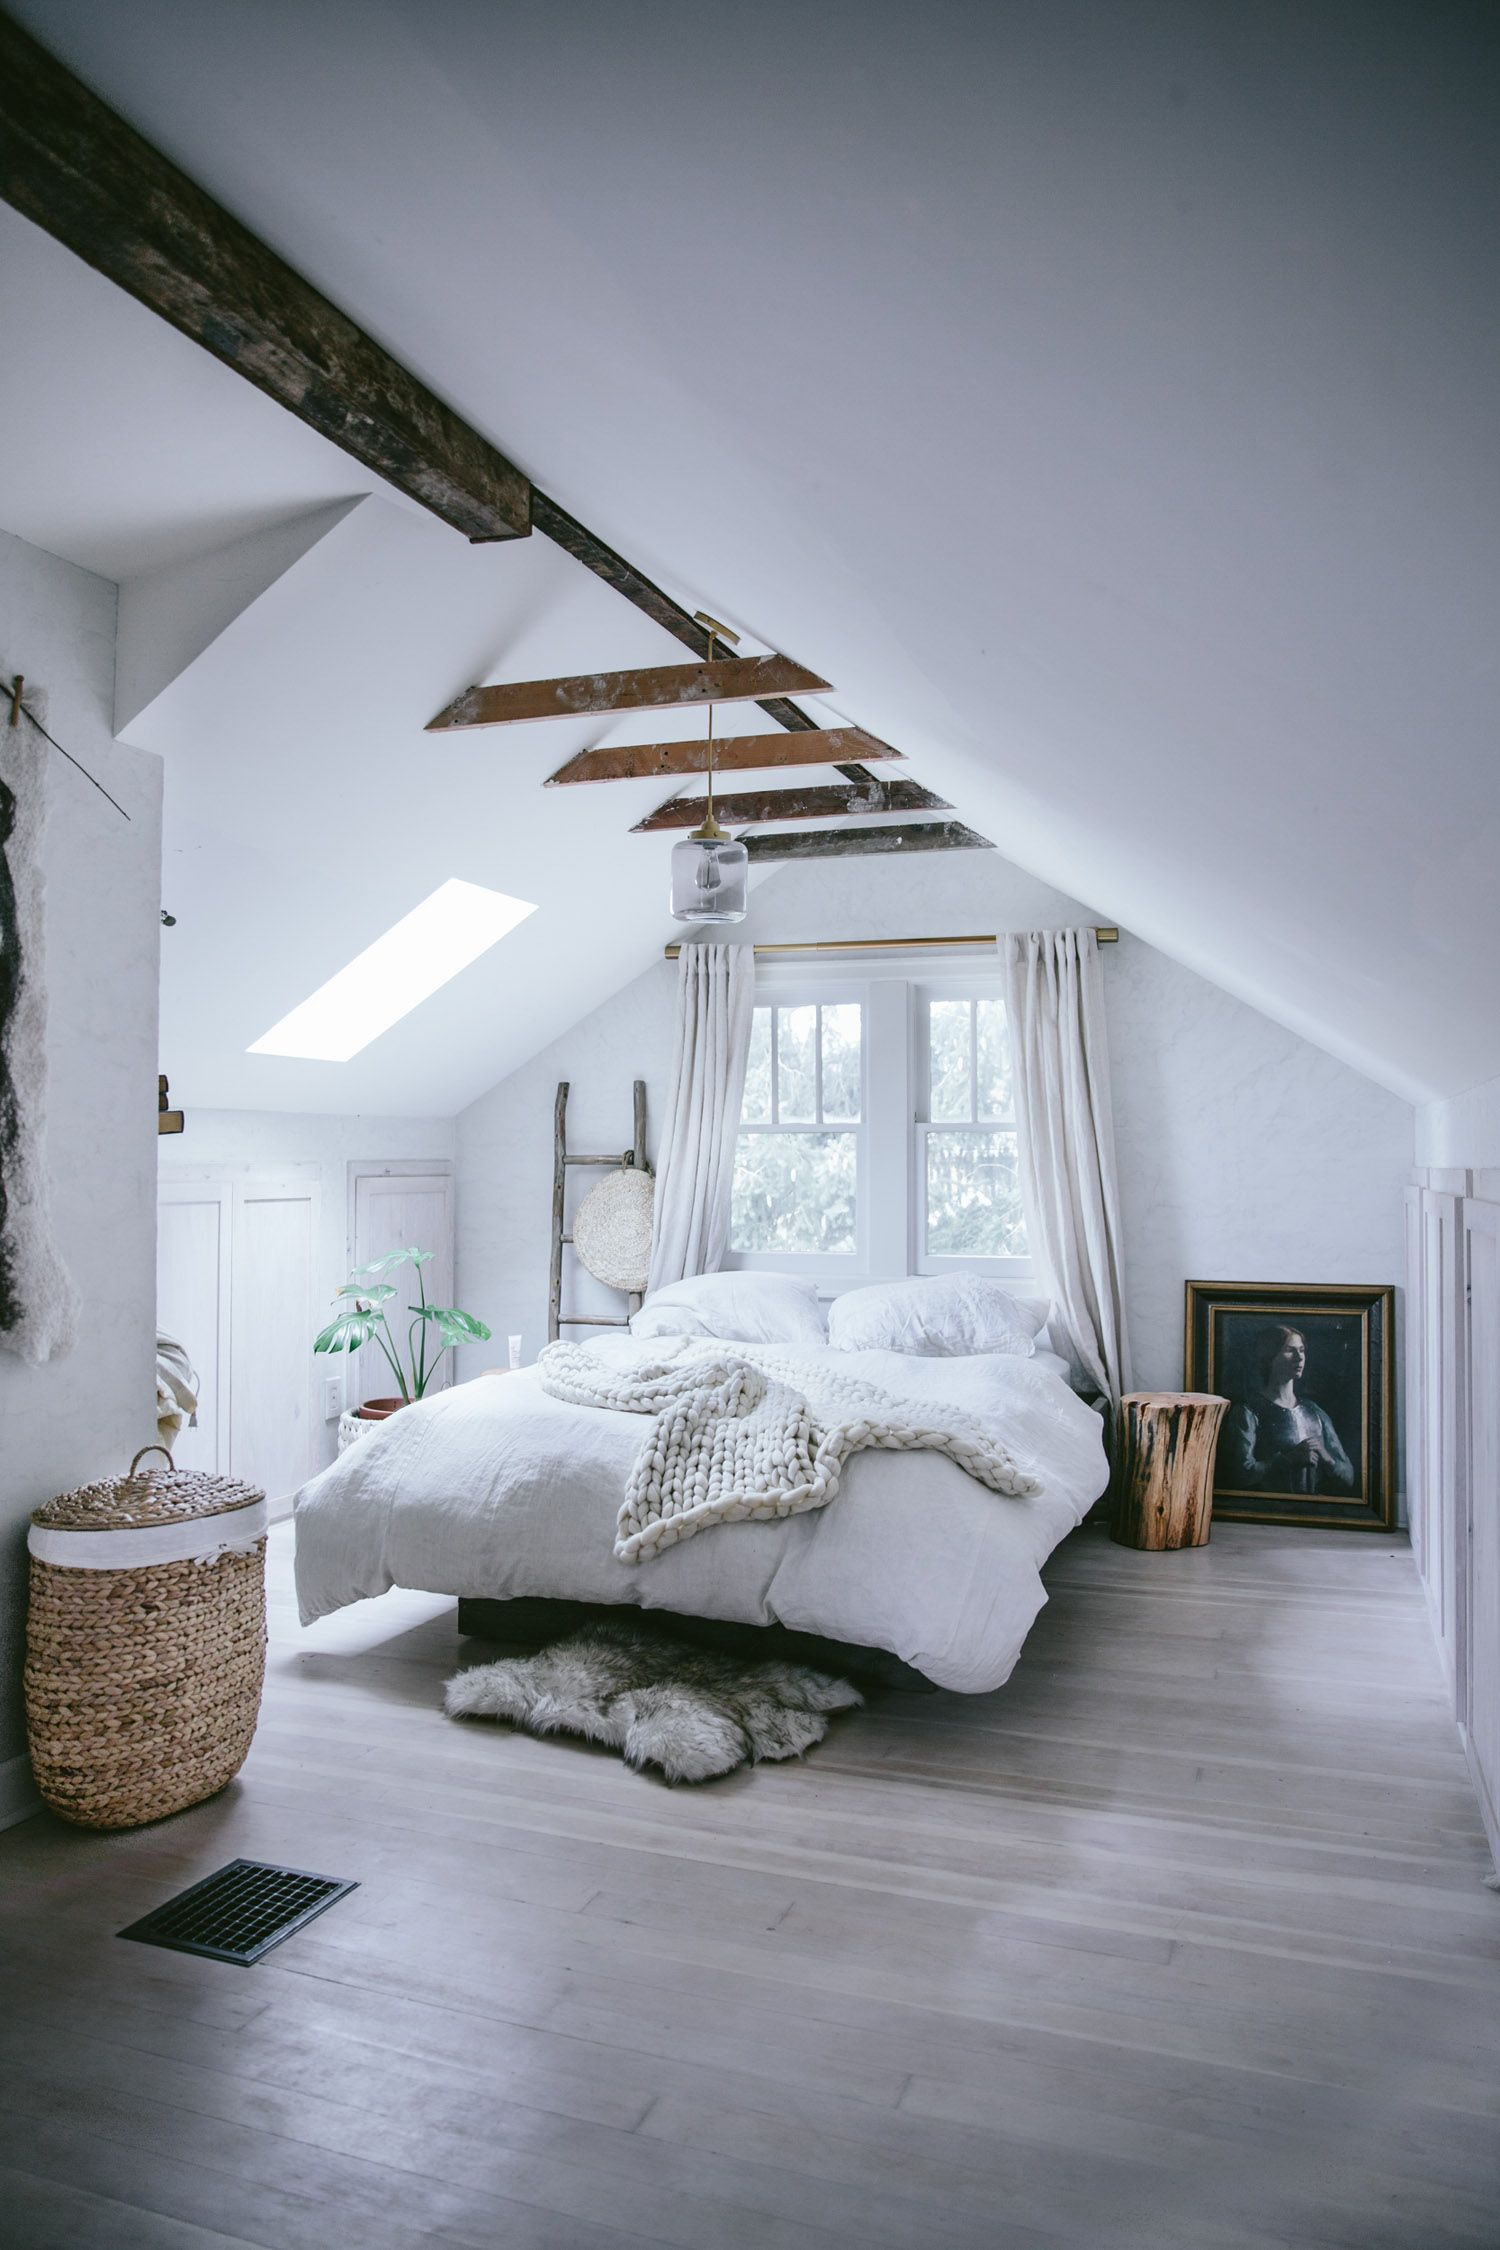 A Cramped Attic Space Gets Opened Up